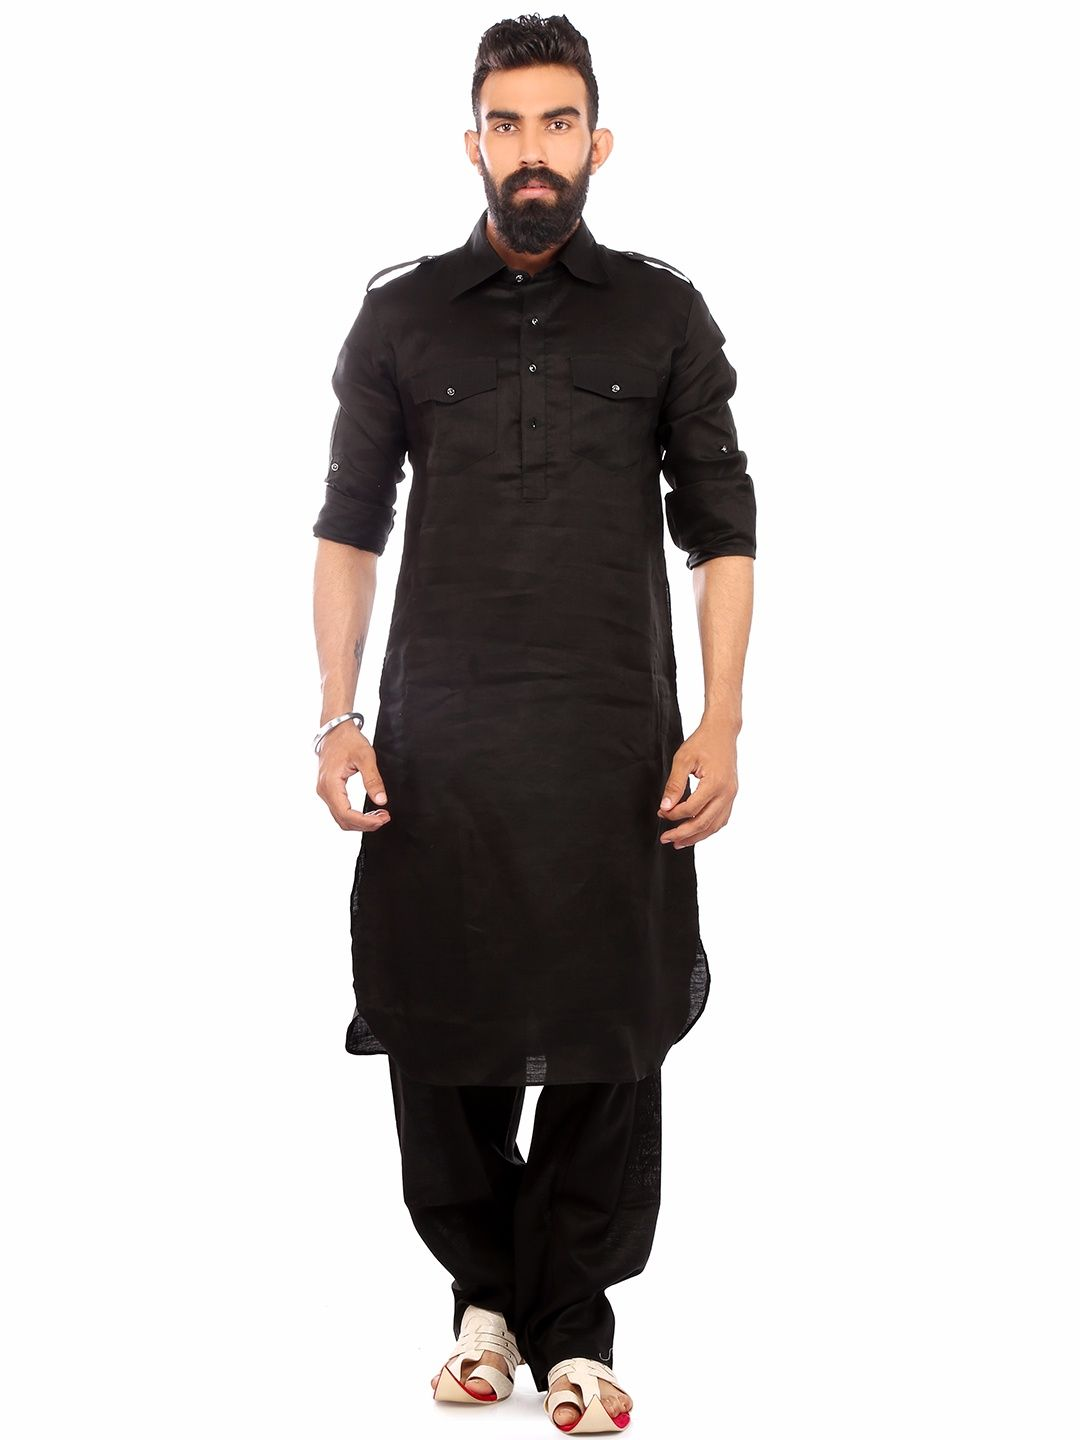 ae742efb58 Black Linen Festive Wear Solid Pathani Suit